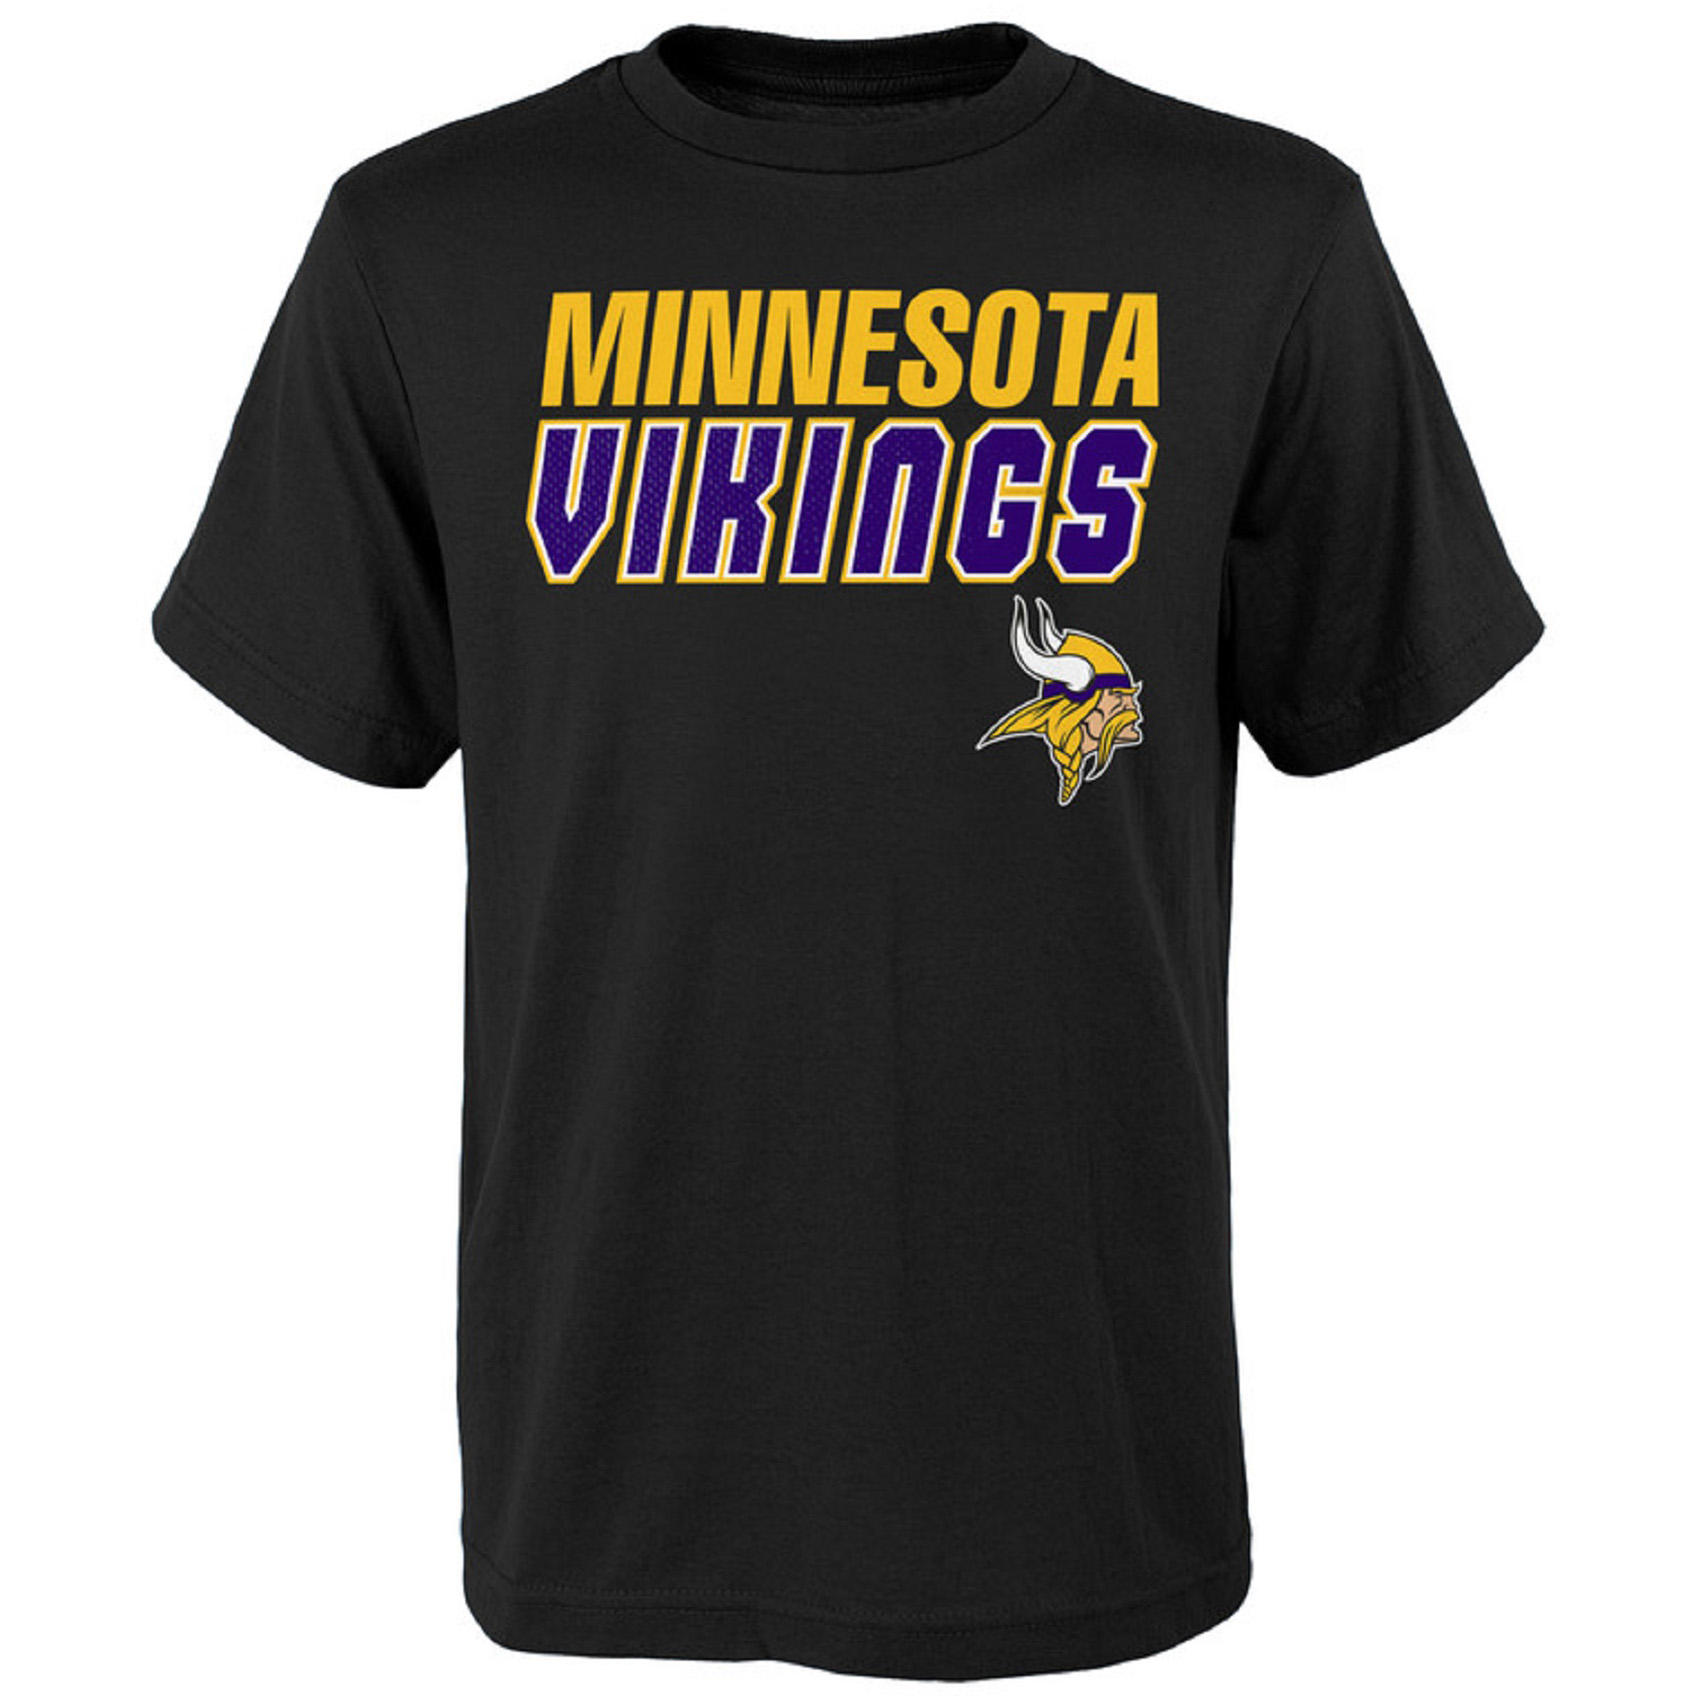 Youth Black Minnesota Vikings Outline T-Shirt